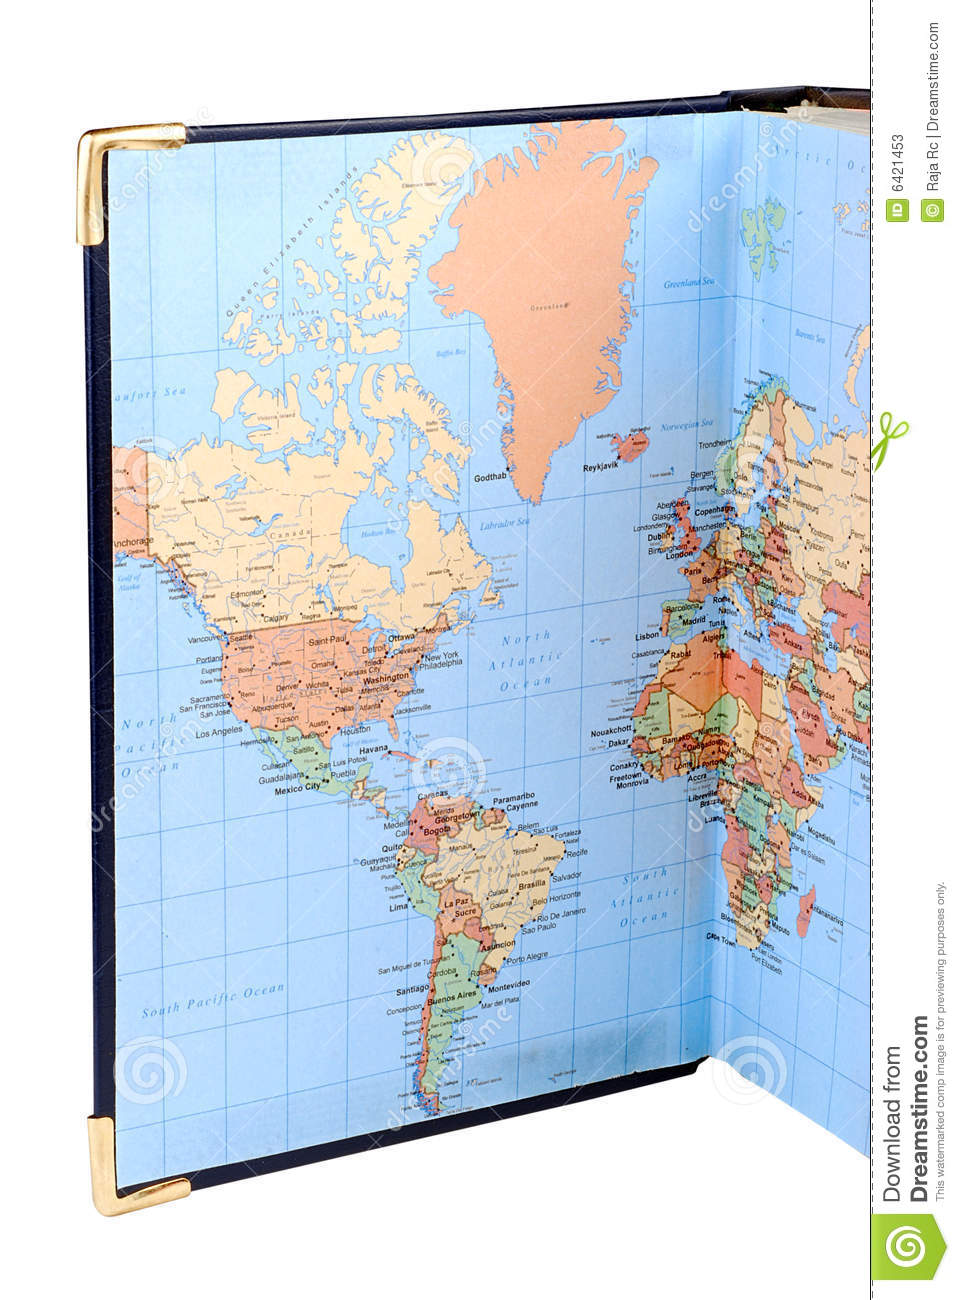 World map stock image. Image of country, geography, atlas - 6421453